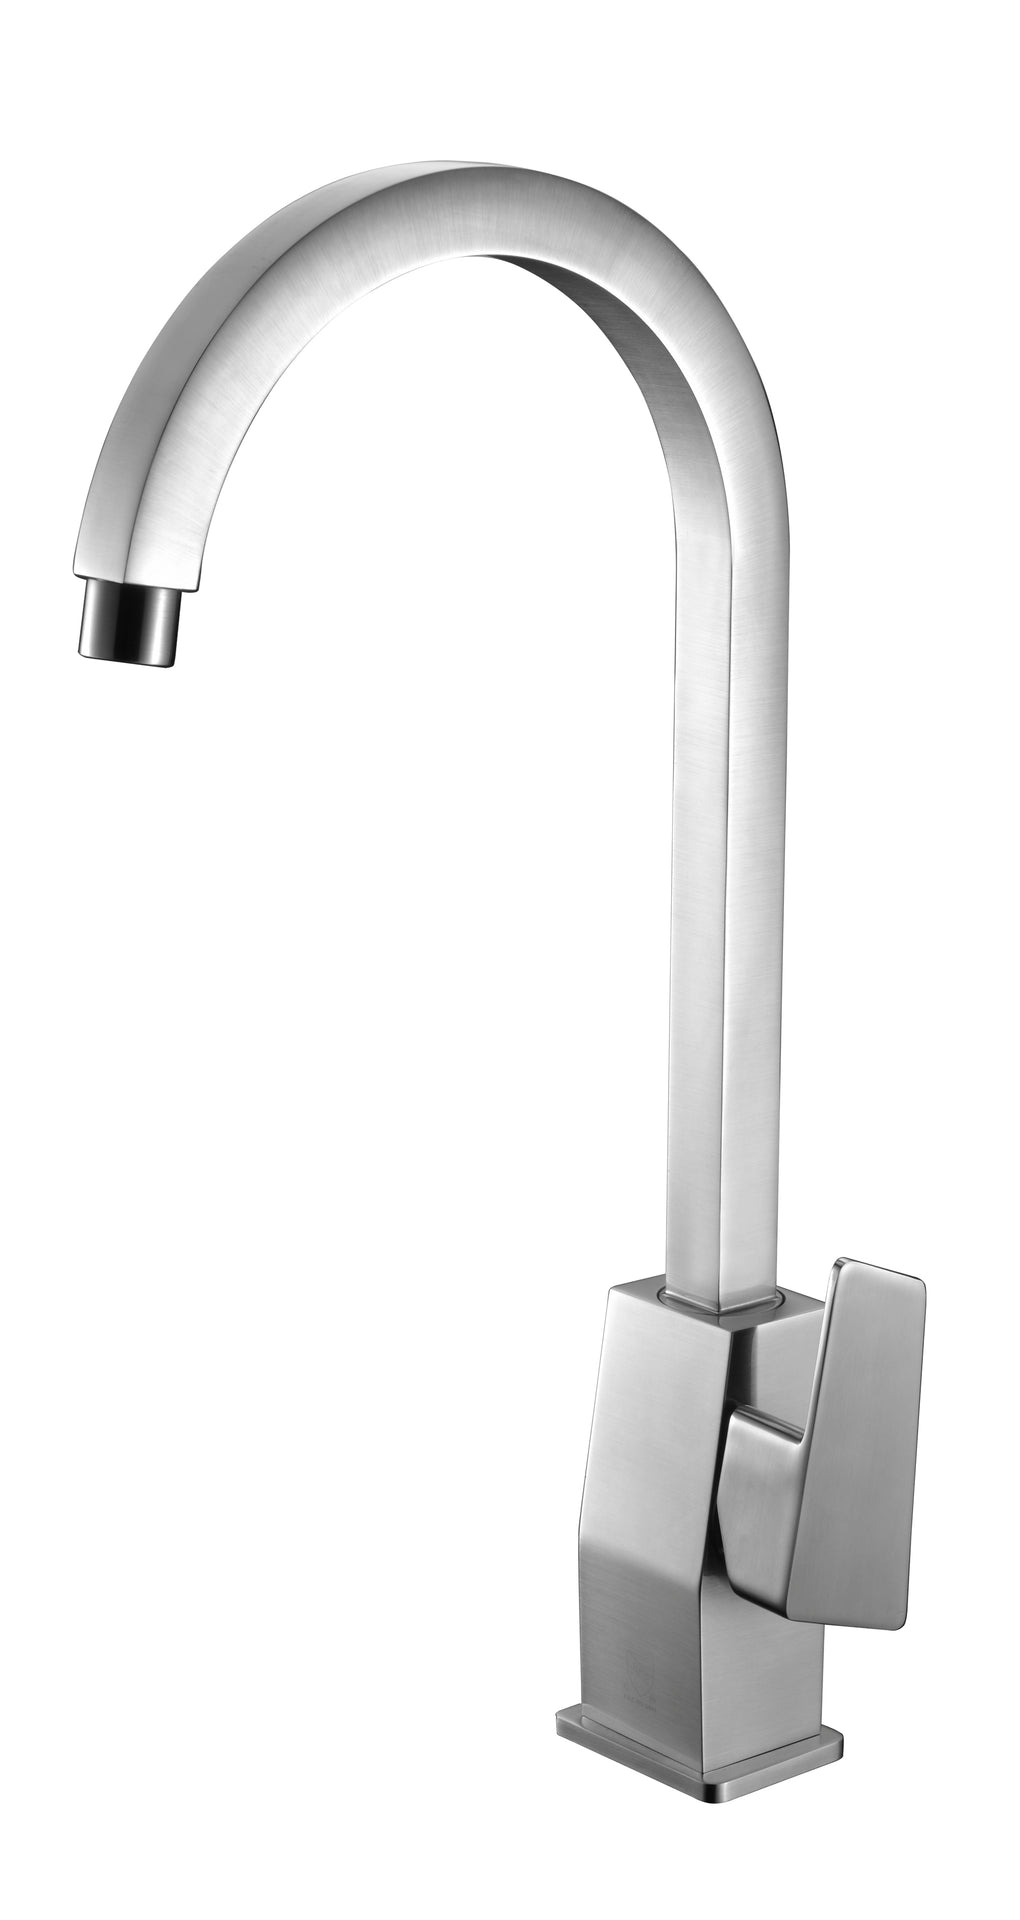 ALFI Gooseneck Single Hole Bathroom Faucet - FaucetMart